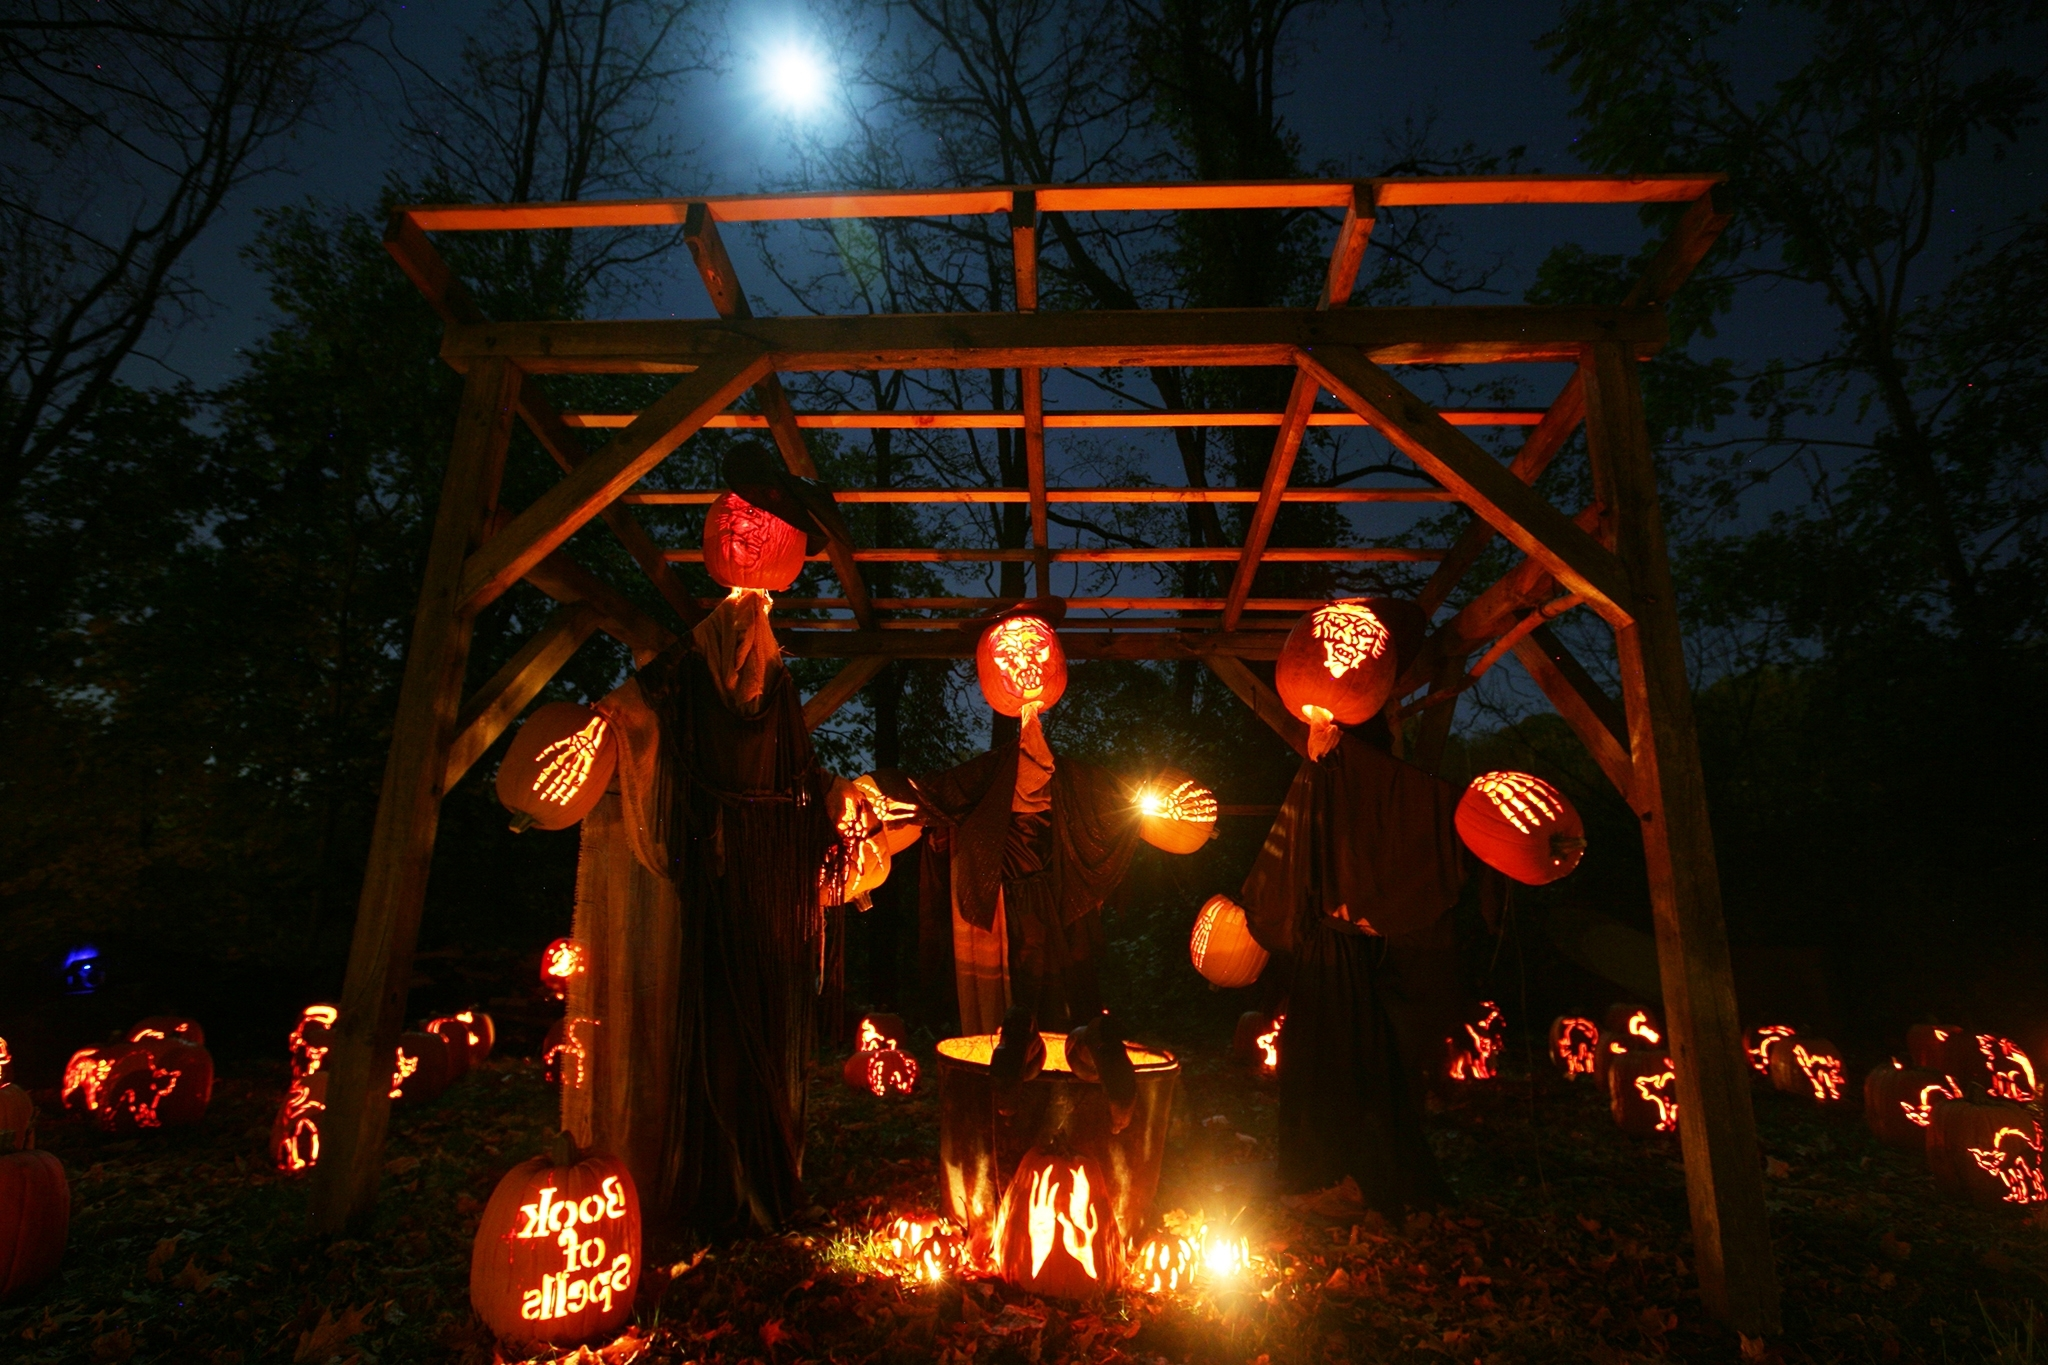 Fashionable Outdoor Halloween Lanterns For Outdoor Halloween Party Ideas For Adults At Modern Home Design Ideas (View 11 of 20)